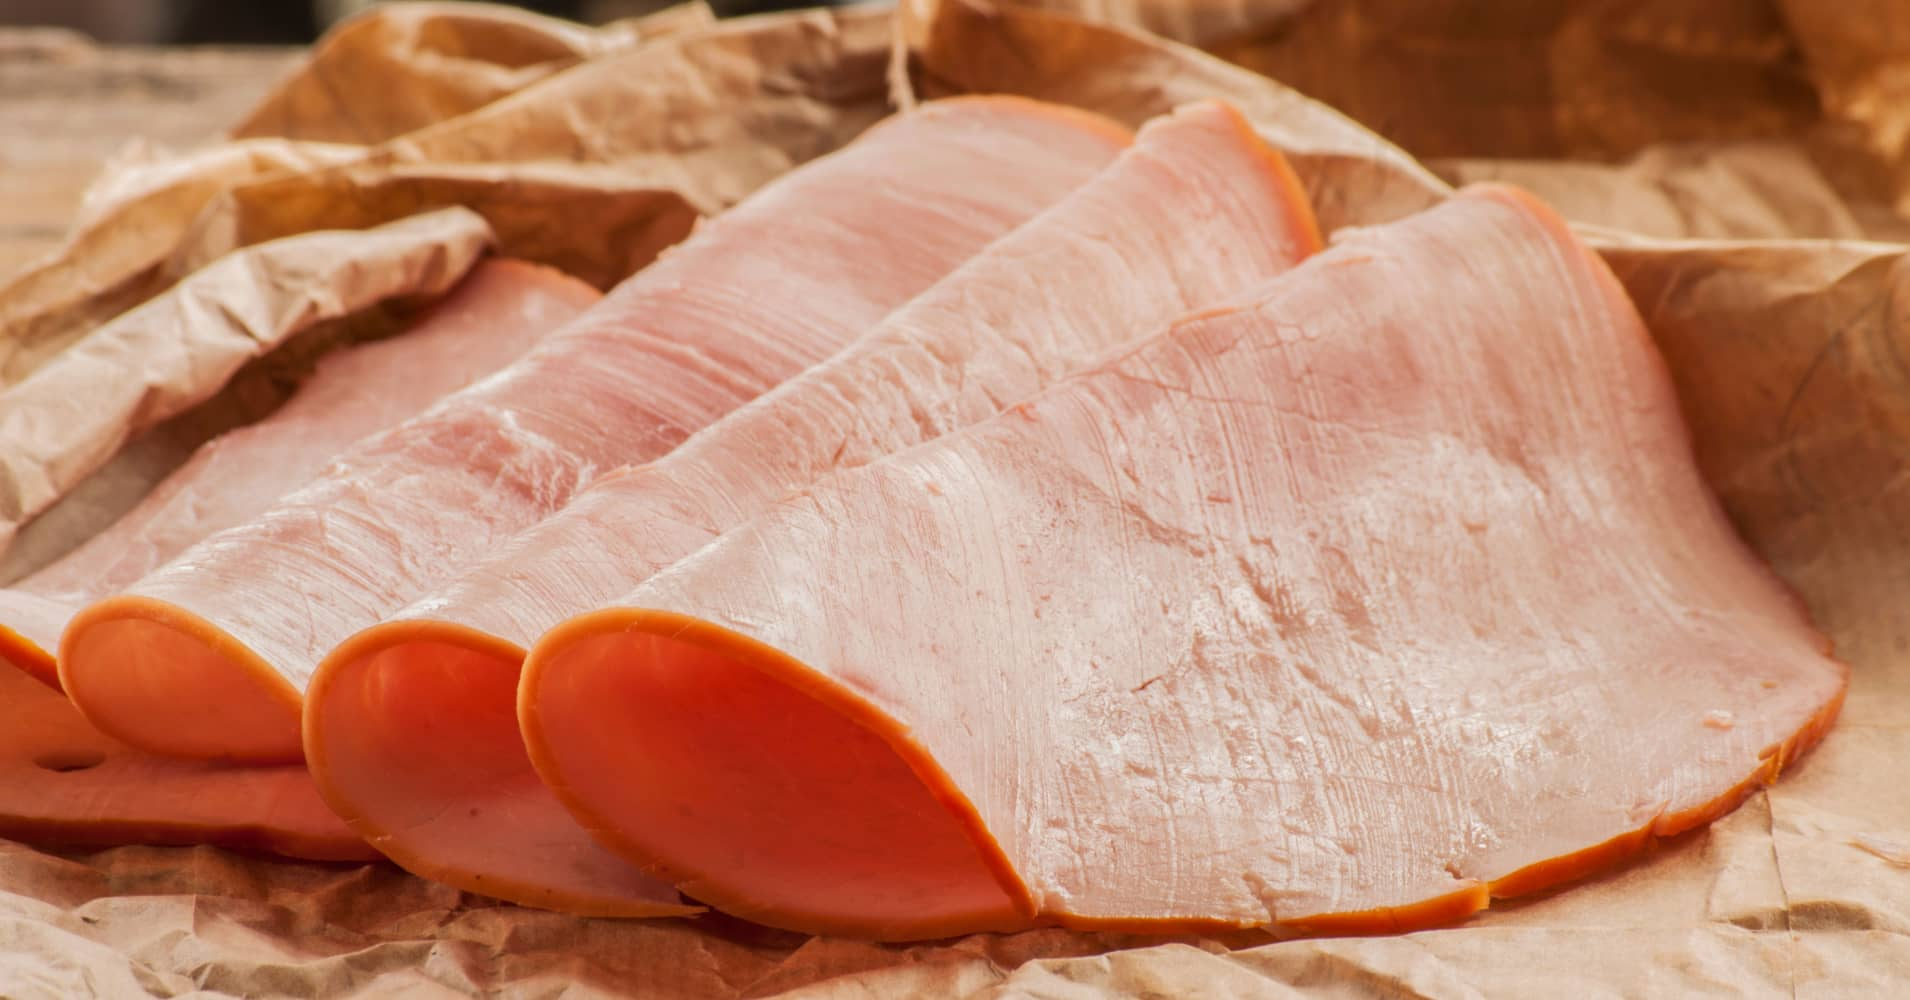 1 dead as 89,000 pounds of ham recalled over listeria concerns